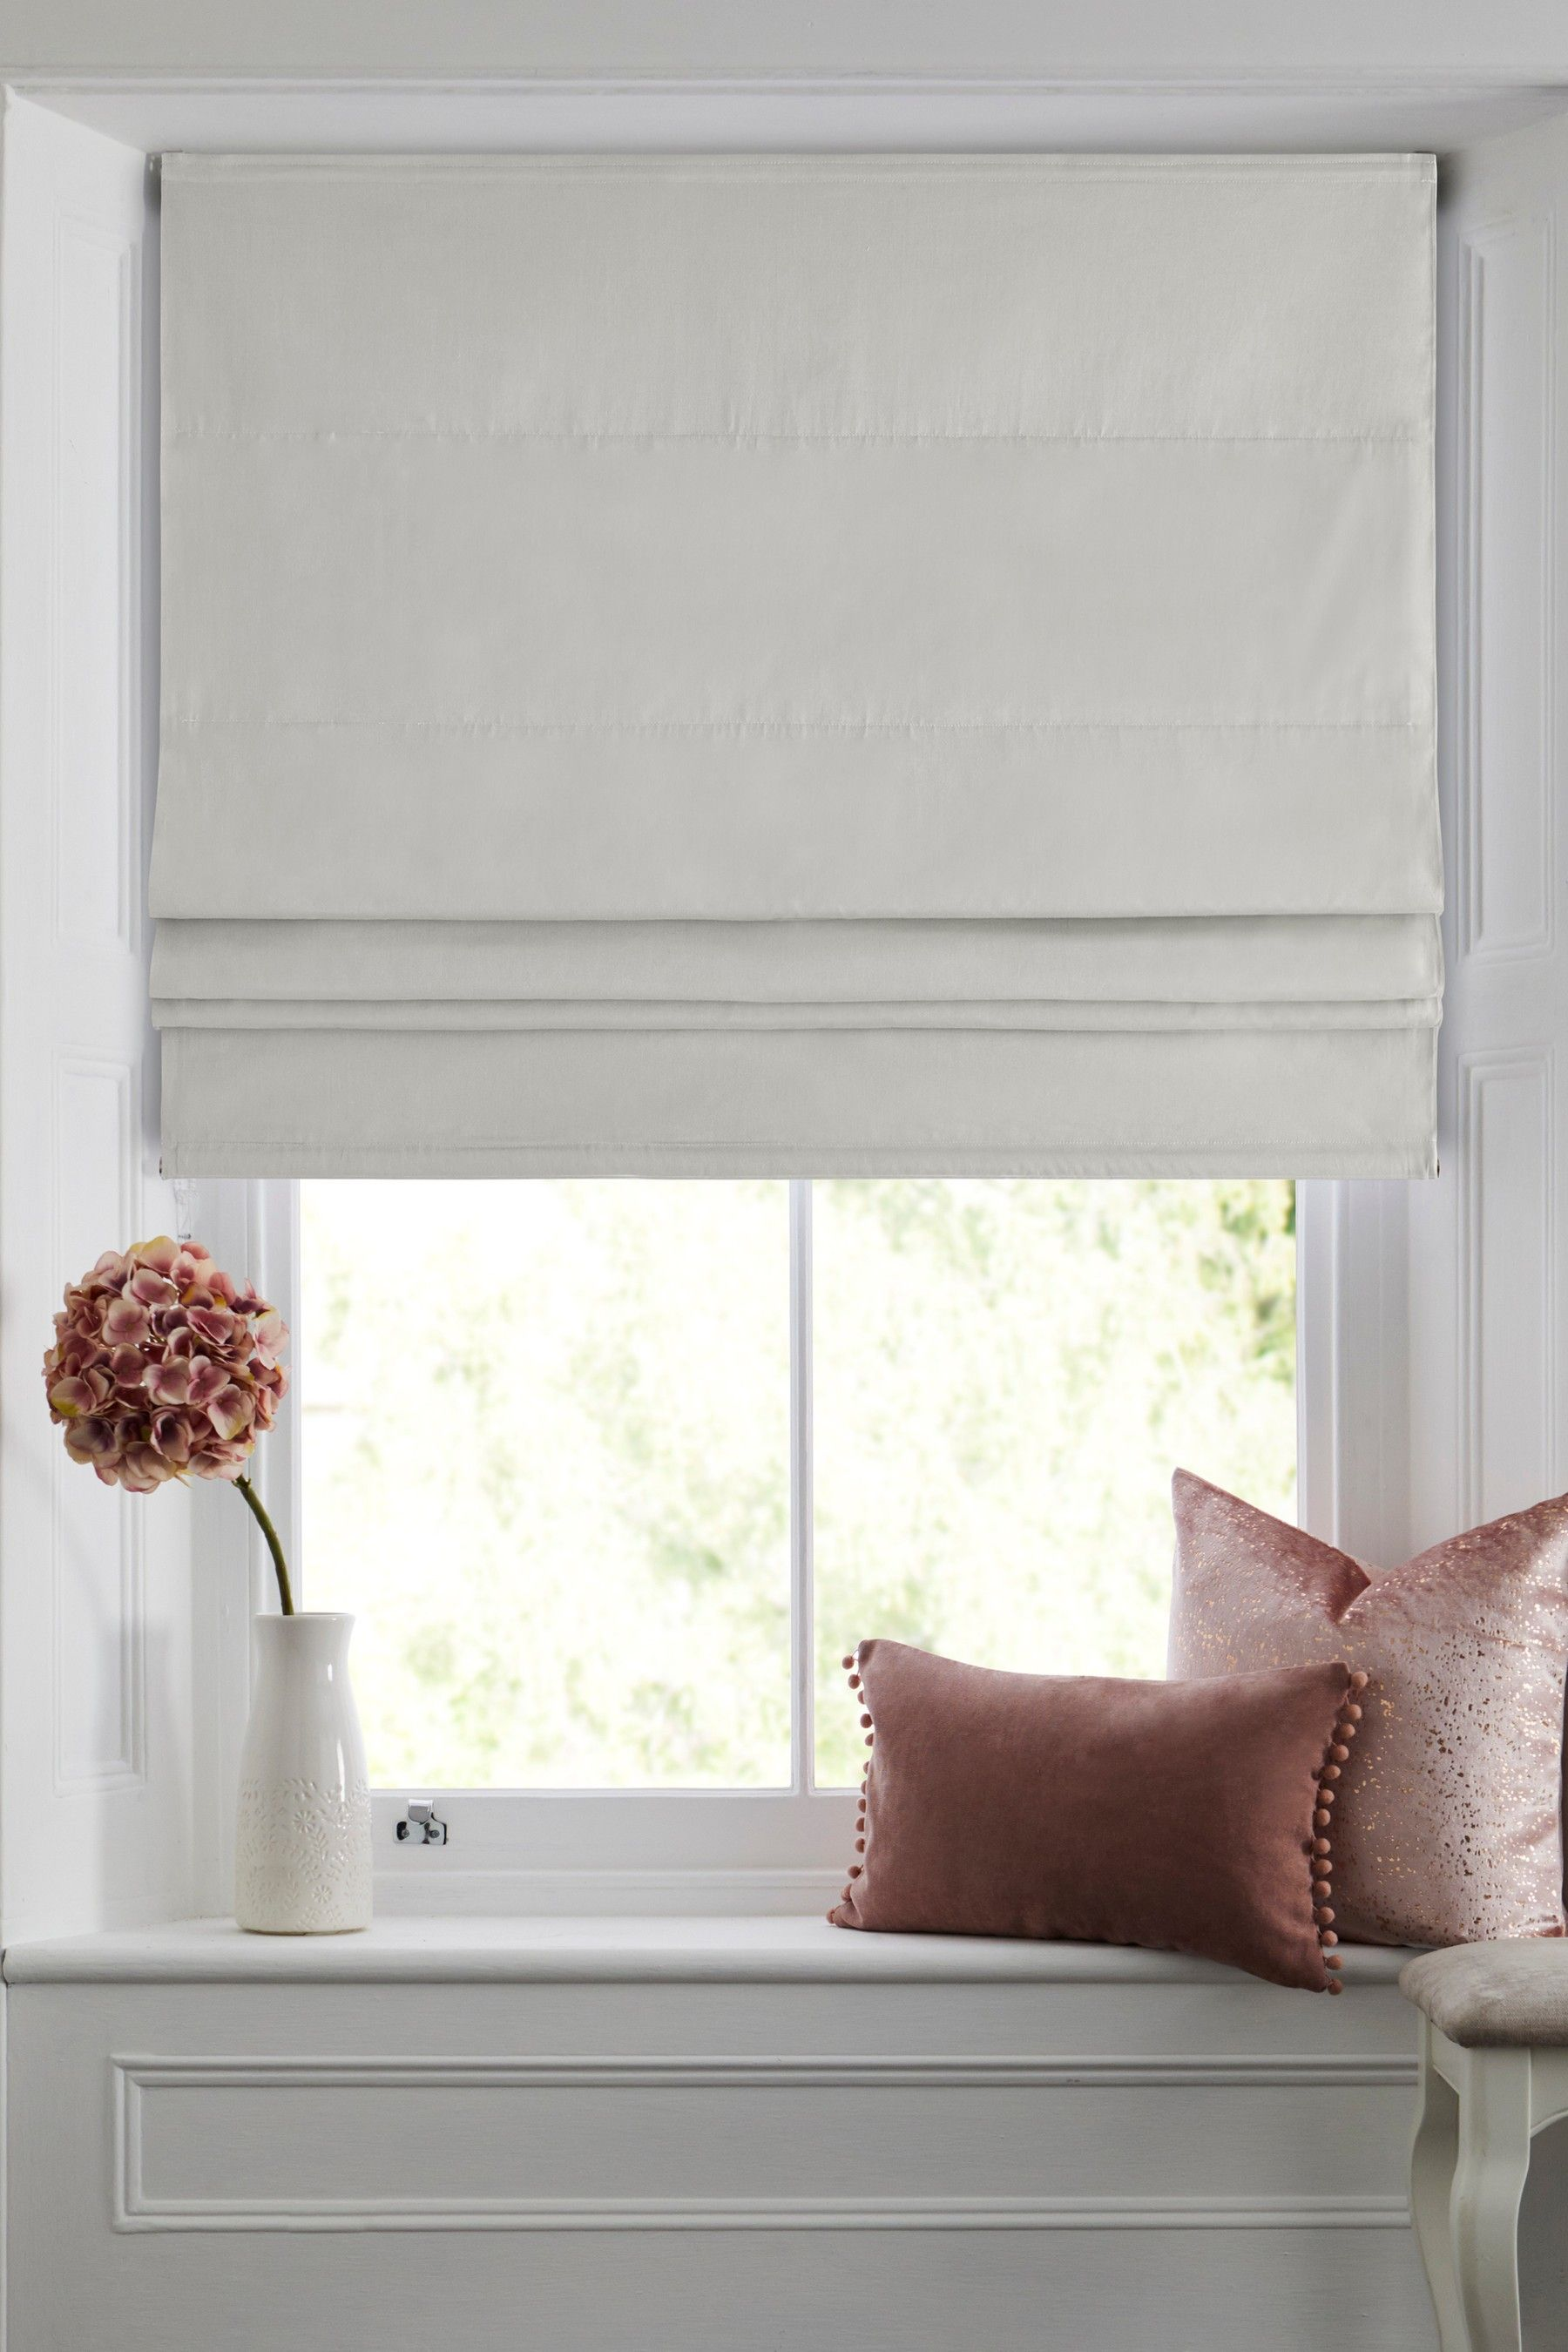 Most Recent Pic Roman Blinds Bedroom Ideas Roman Blinds Are A Popular Favourite Among Consc Roman Blinds Living Room Roman Blinds Bedroom Blackout Roman Blinds